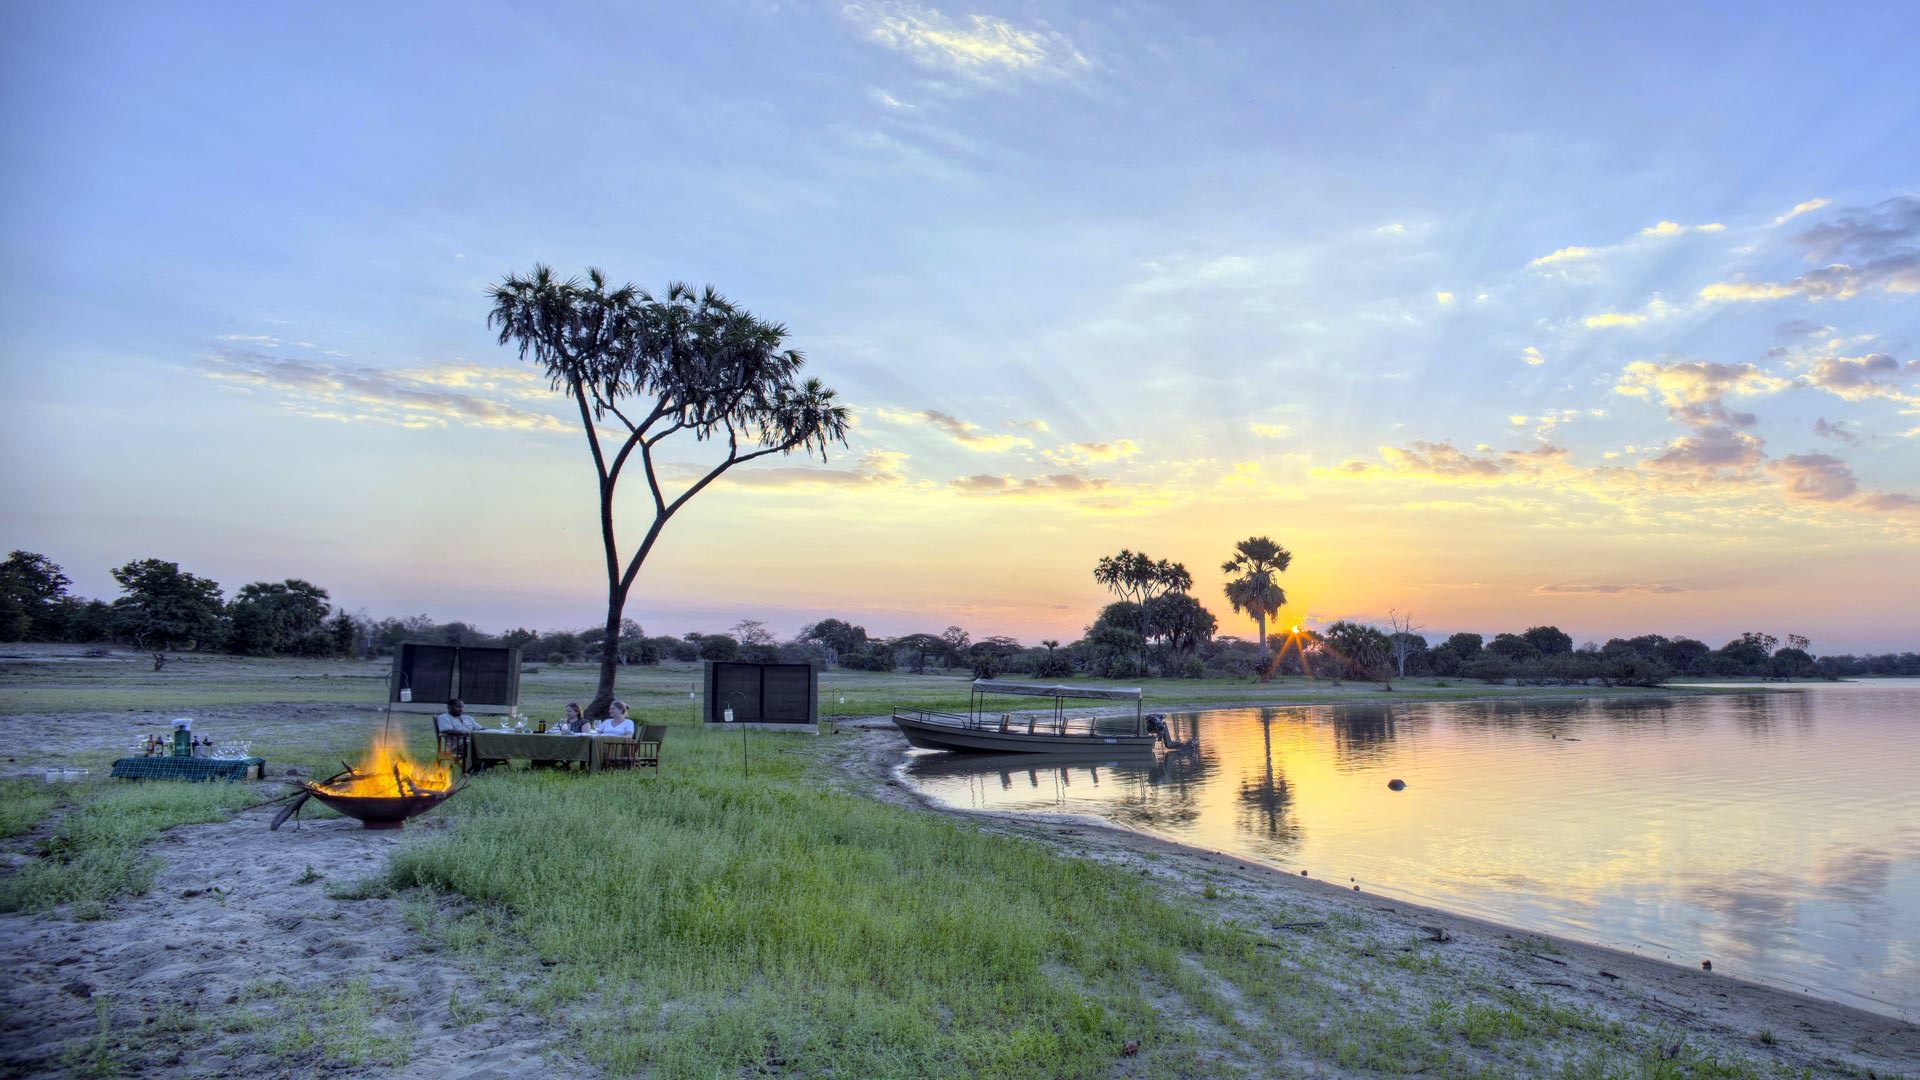 Roho ya Selous - relaxing at a fly camp location